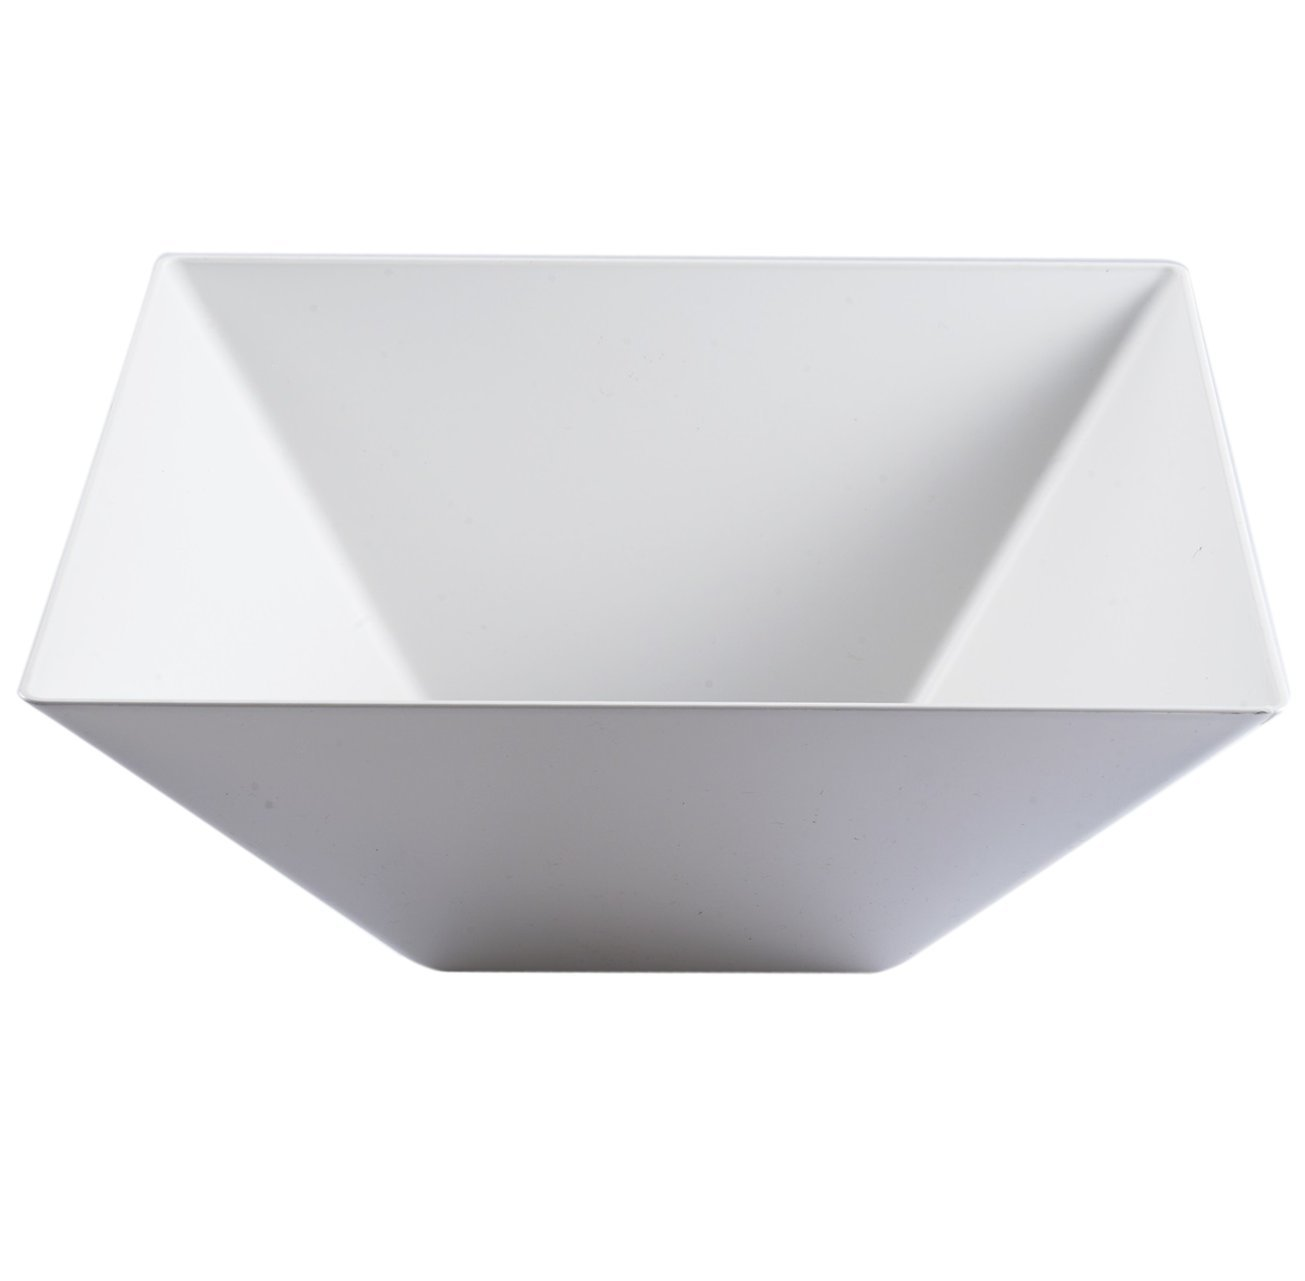 Elegant Disposable Plastic Serving Bowl - Heavyweight Fancy Square White 128oz Serving Bowls – Reusable Appetizer Bowl Party Set For Wedding, Christmas, Thanksgiving, Birthday & Other Occasions